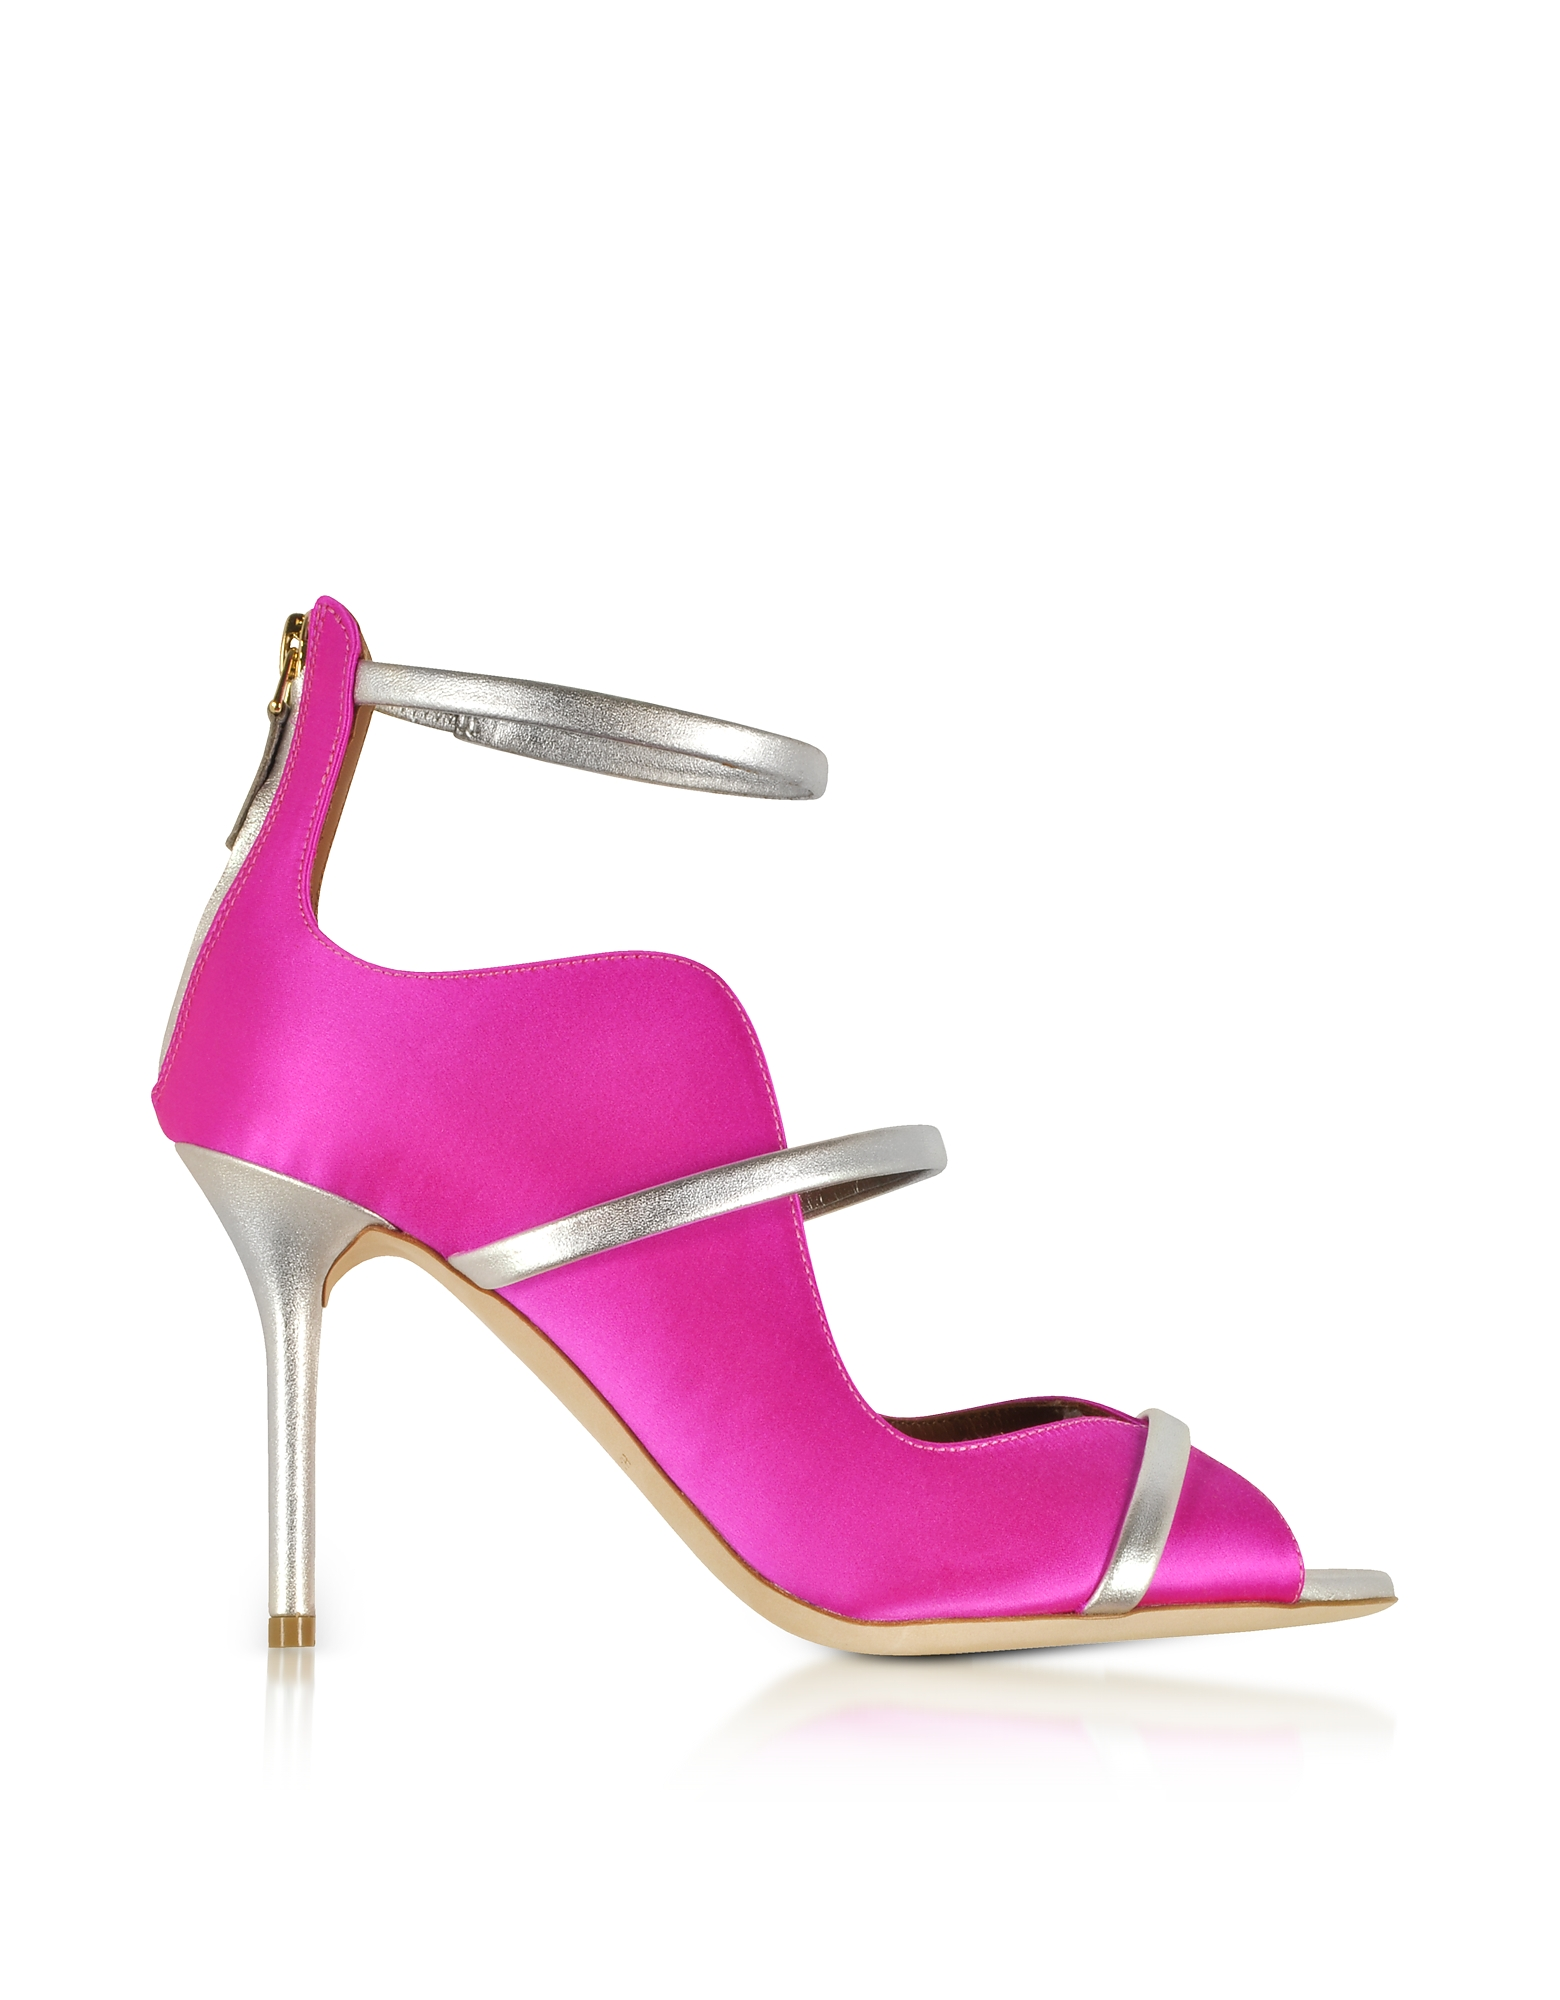 Malone Souliers Shoes, Mika 85 Fuchsia Satin and Metallic Leather High Heel Sandals